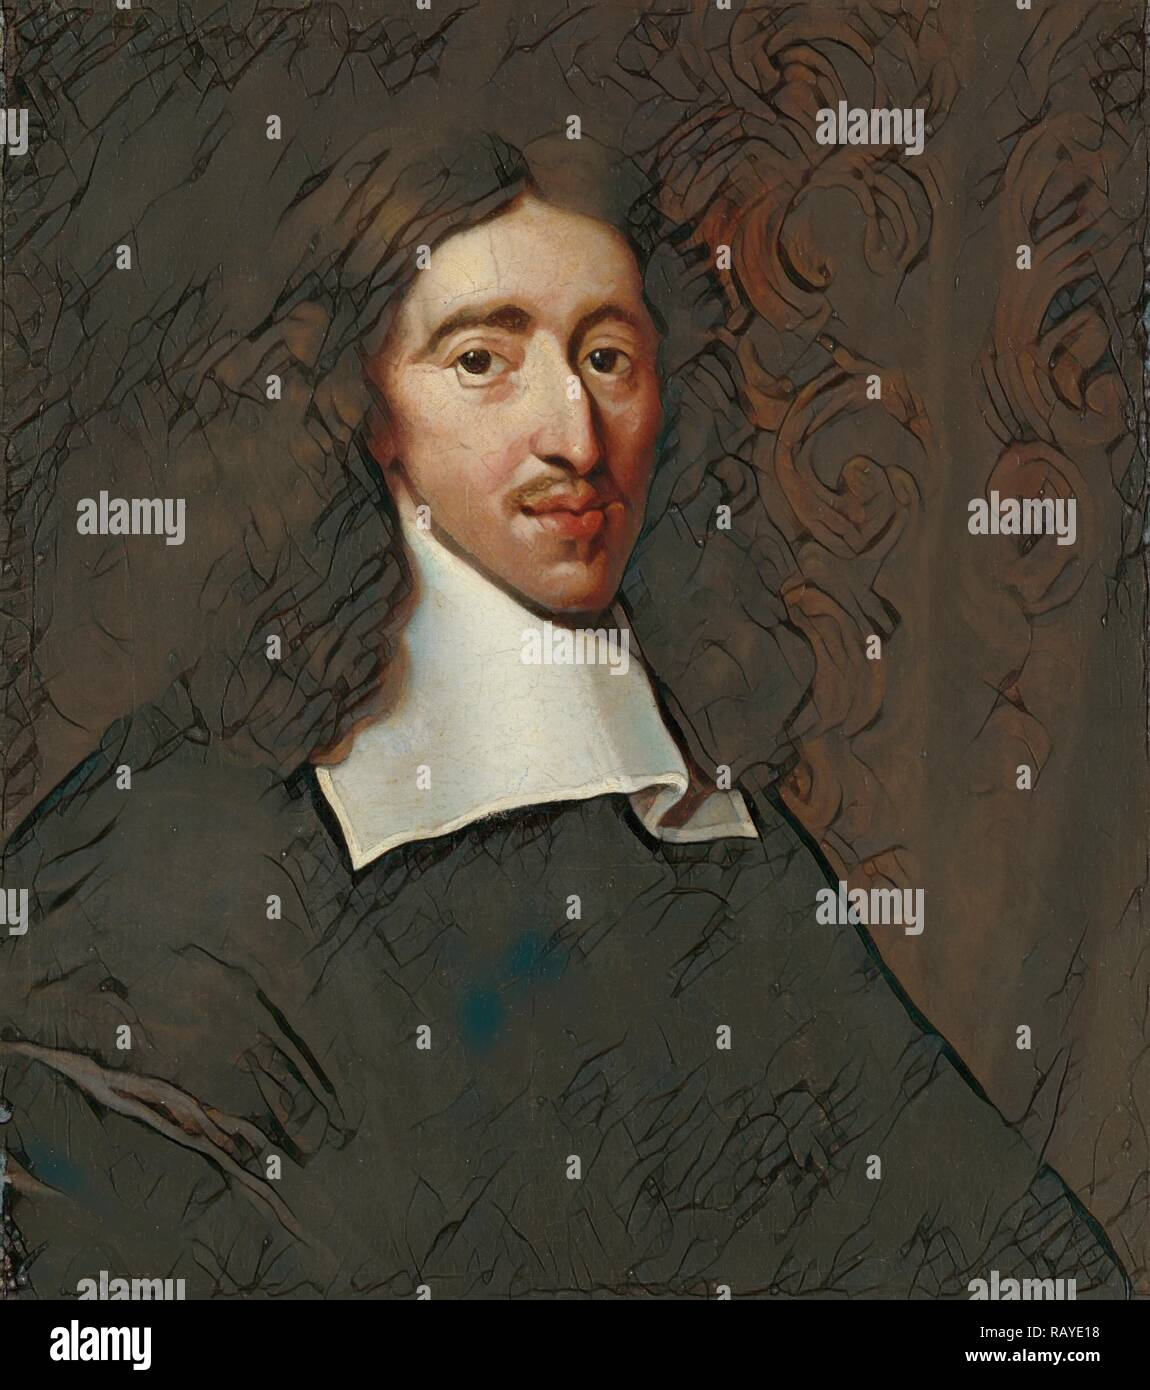 Portrait of Johan de Witt, 1625-72, Grand pensionary of Holland, copy after Caspar Netscher, 1660 - 1700. Reimagined - Stock Image